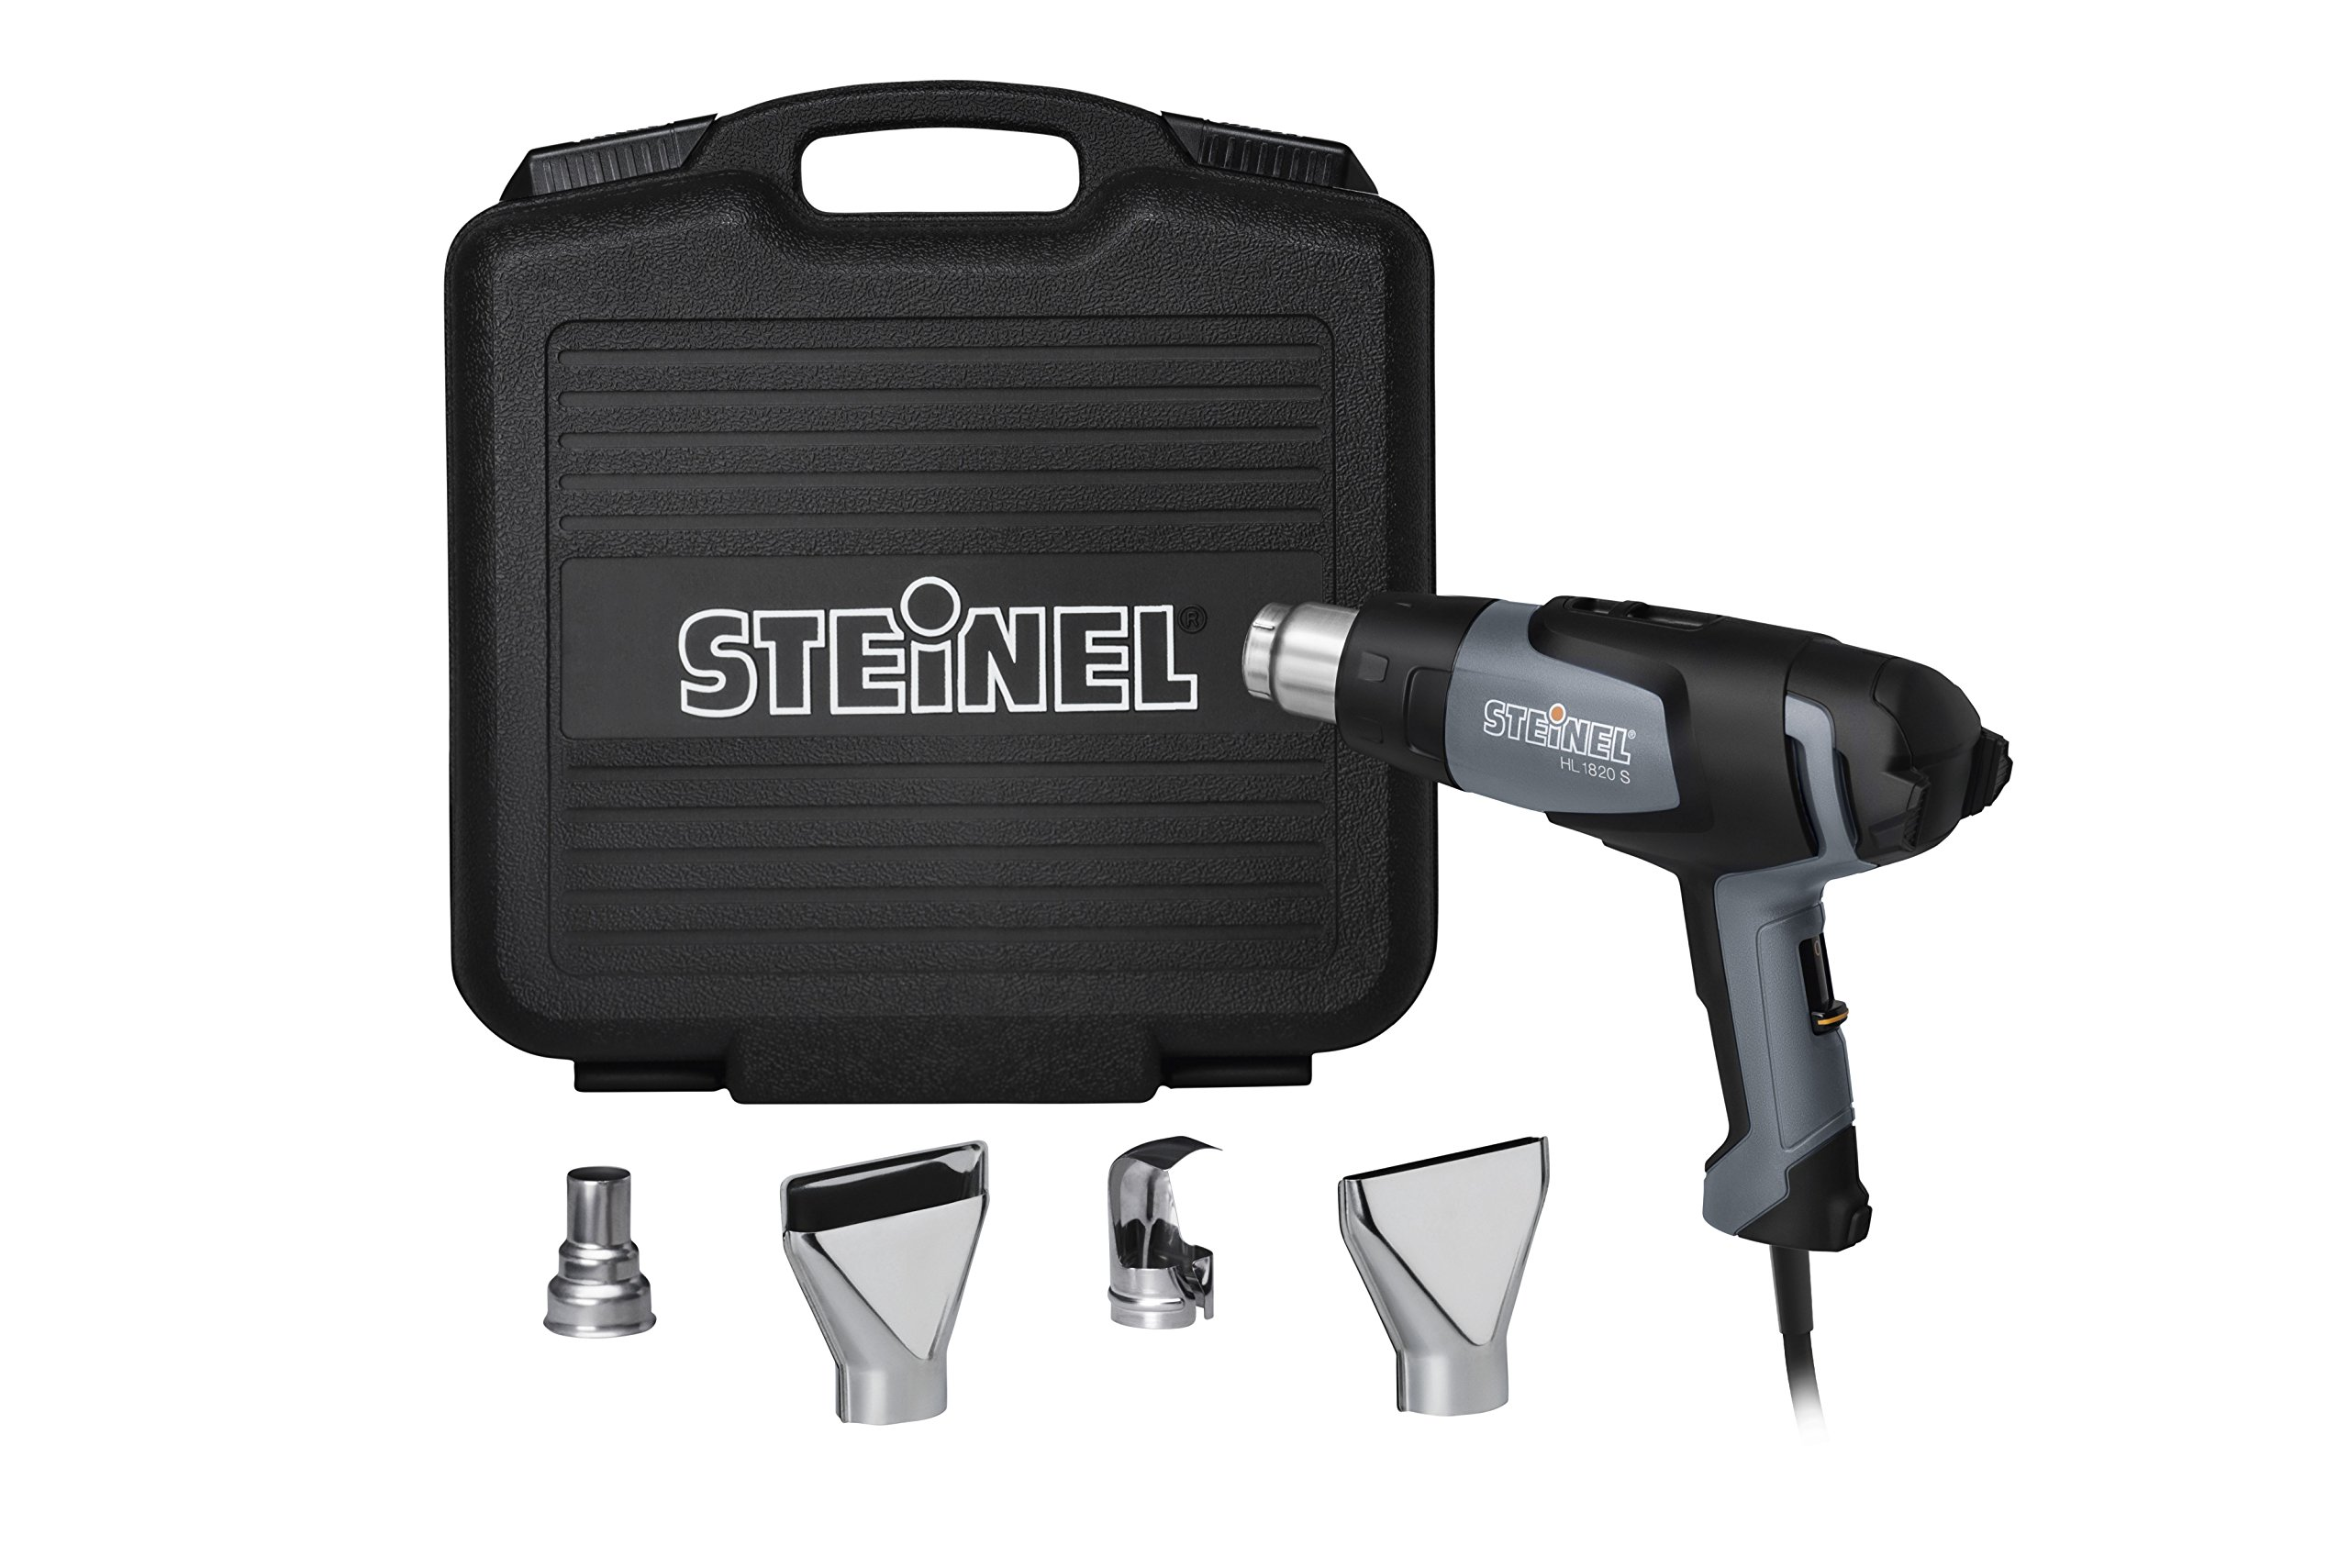 Steinel HL 1820 S General Purpose Kit - incl. heat tool with 1400 Watts, adjustable temperature & airflow, hot air blower set for stripping paint, soldering pipes, shaping plastics